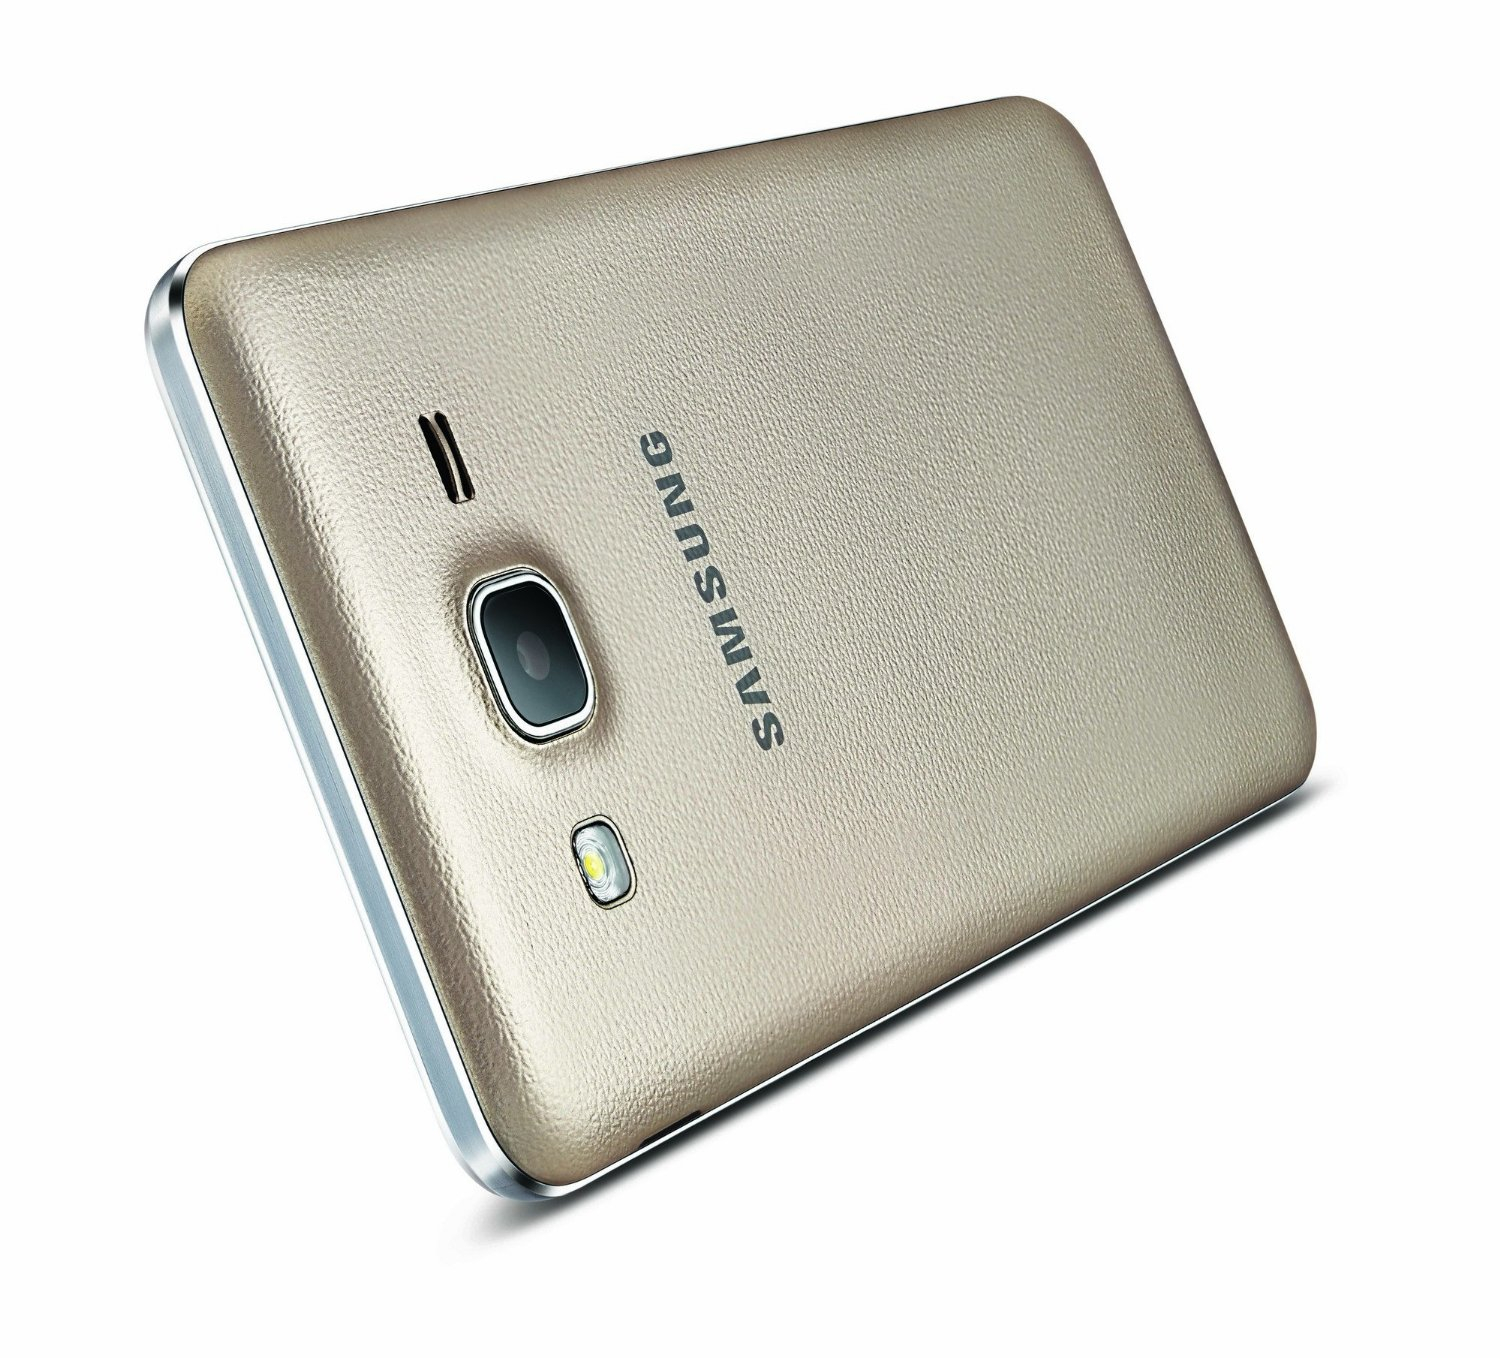 Samsung Galaxy On7 Pro Photos Images And Wallpapers Gold Image 6